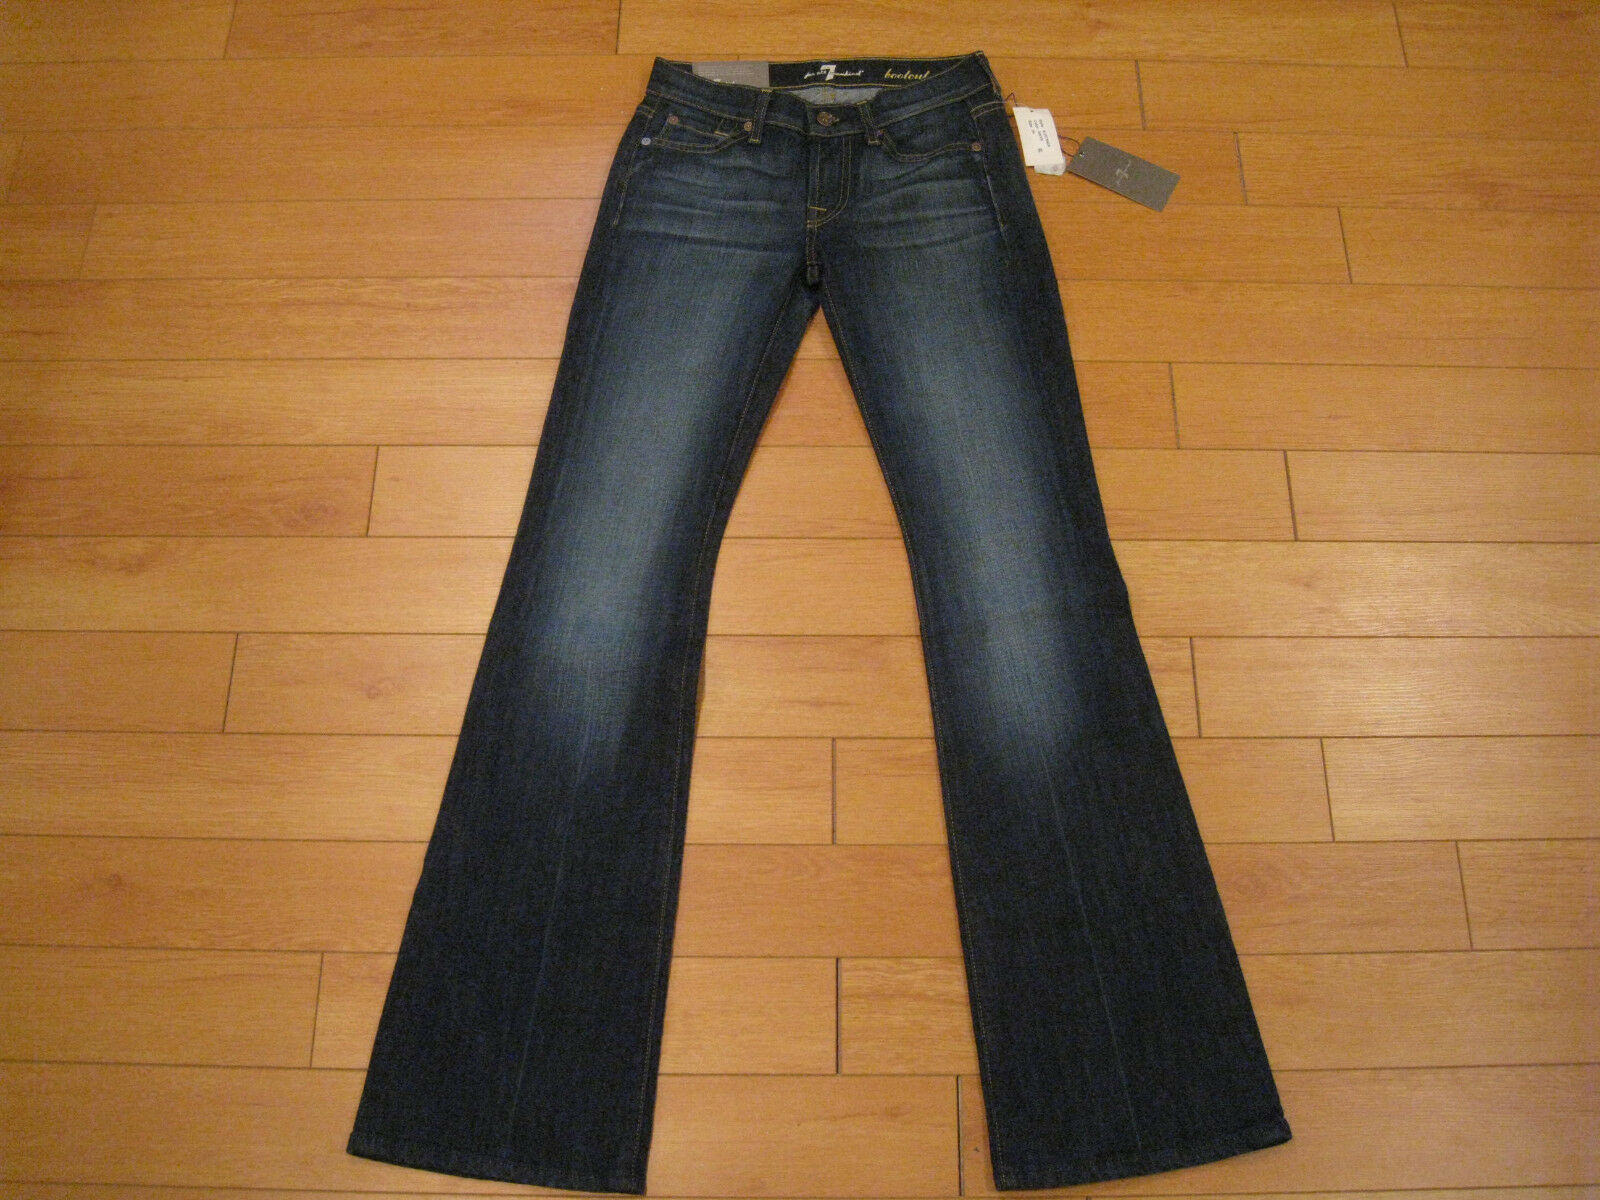 NWT Women's 7 For All Man Kind Bootcut Jeans (Retail  178.00)